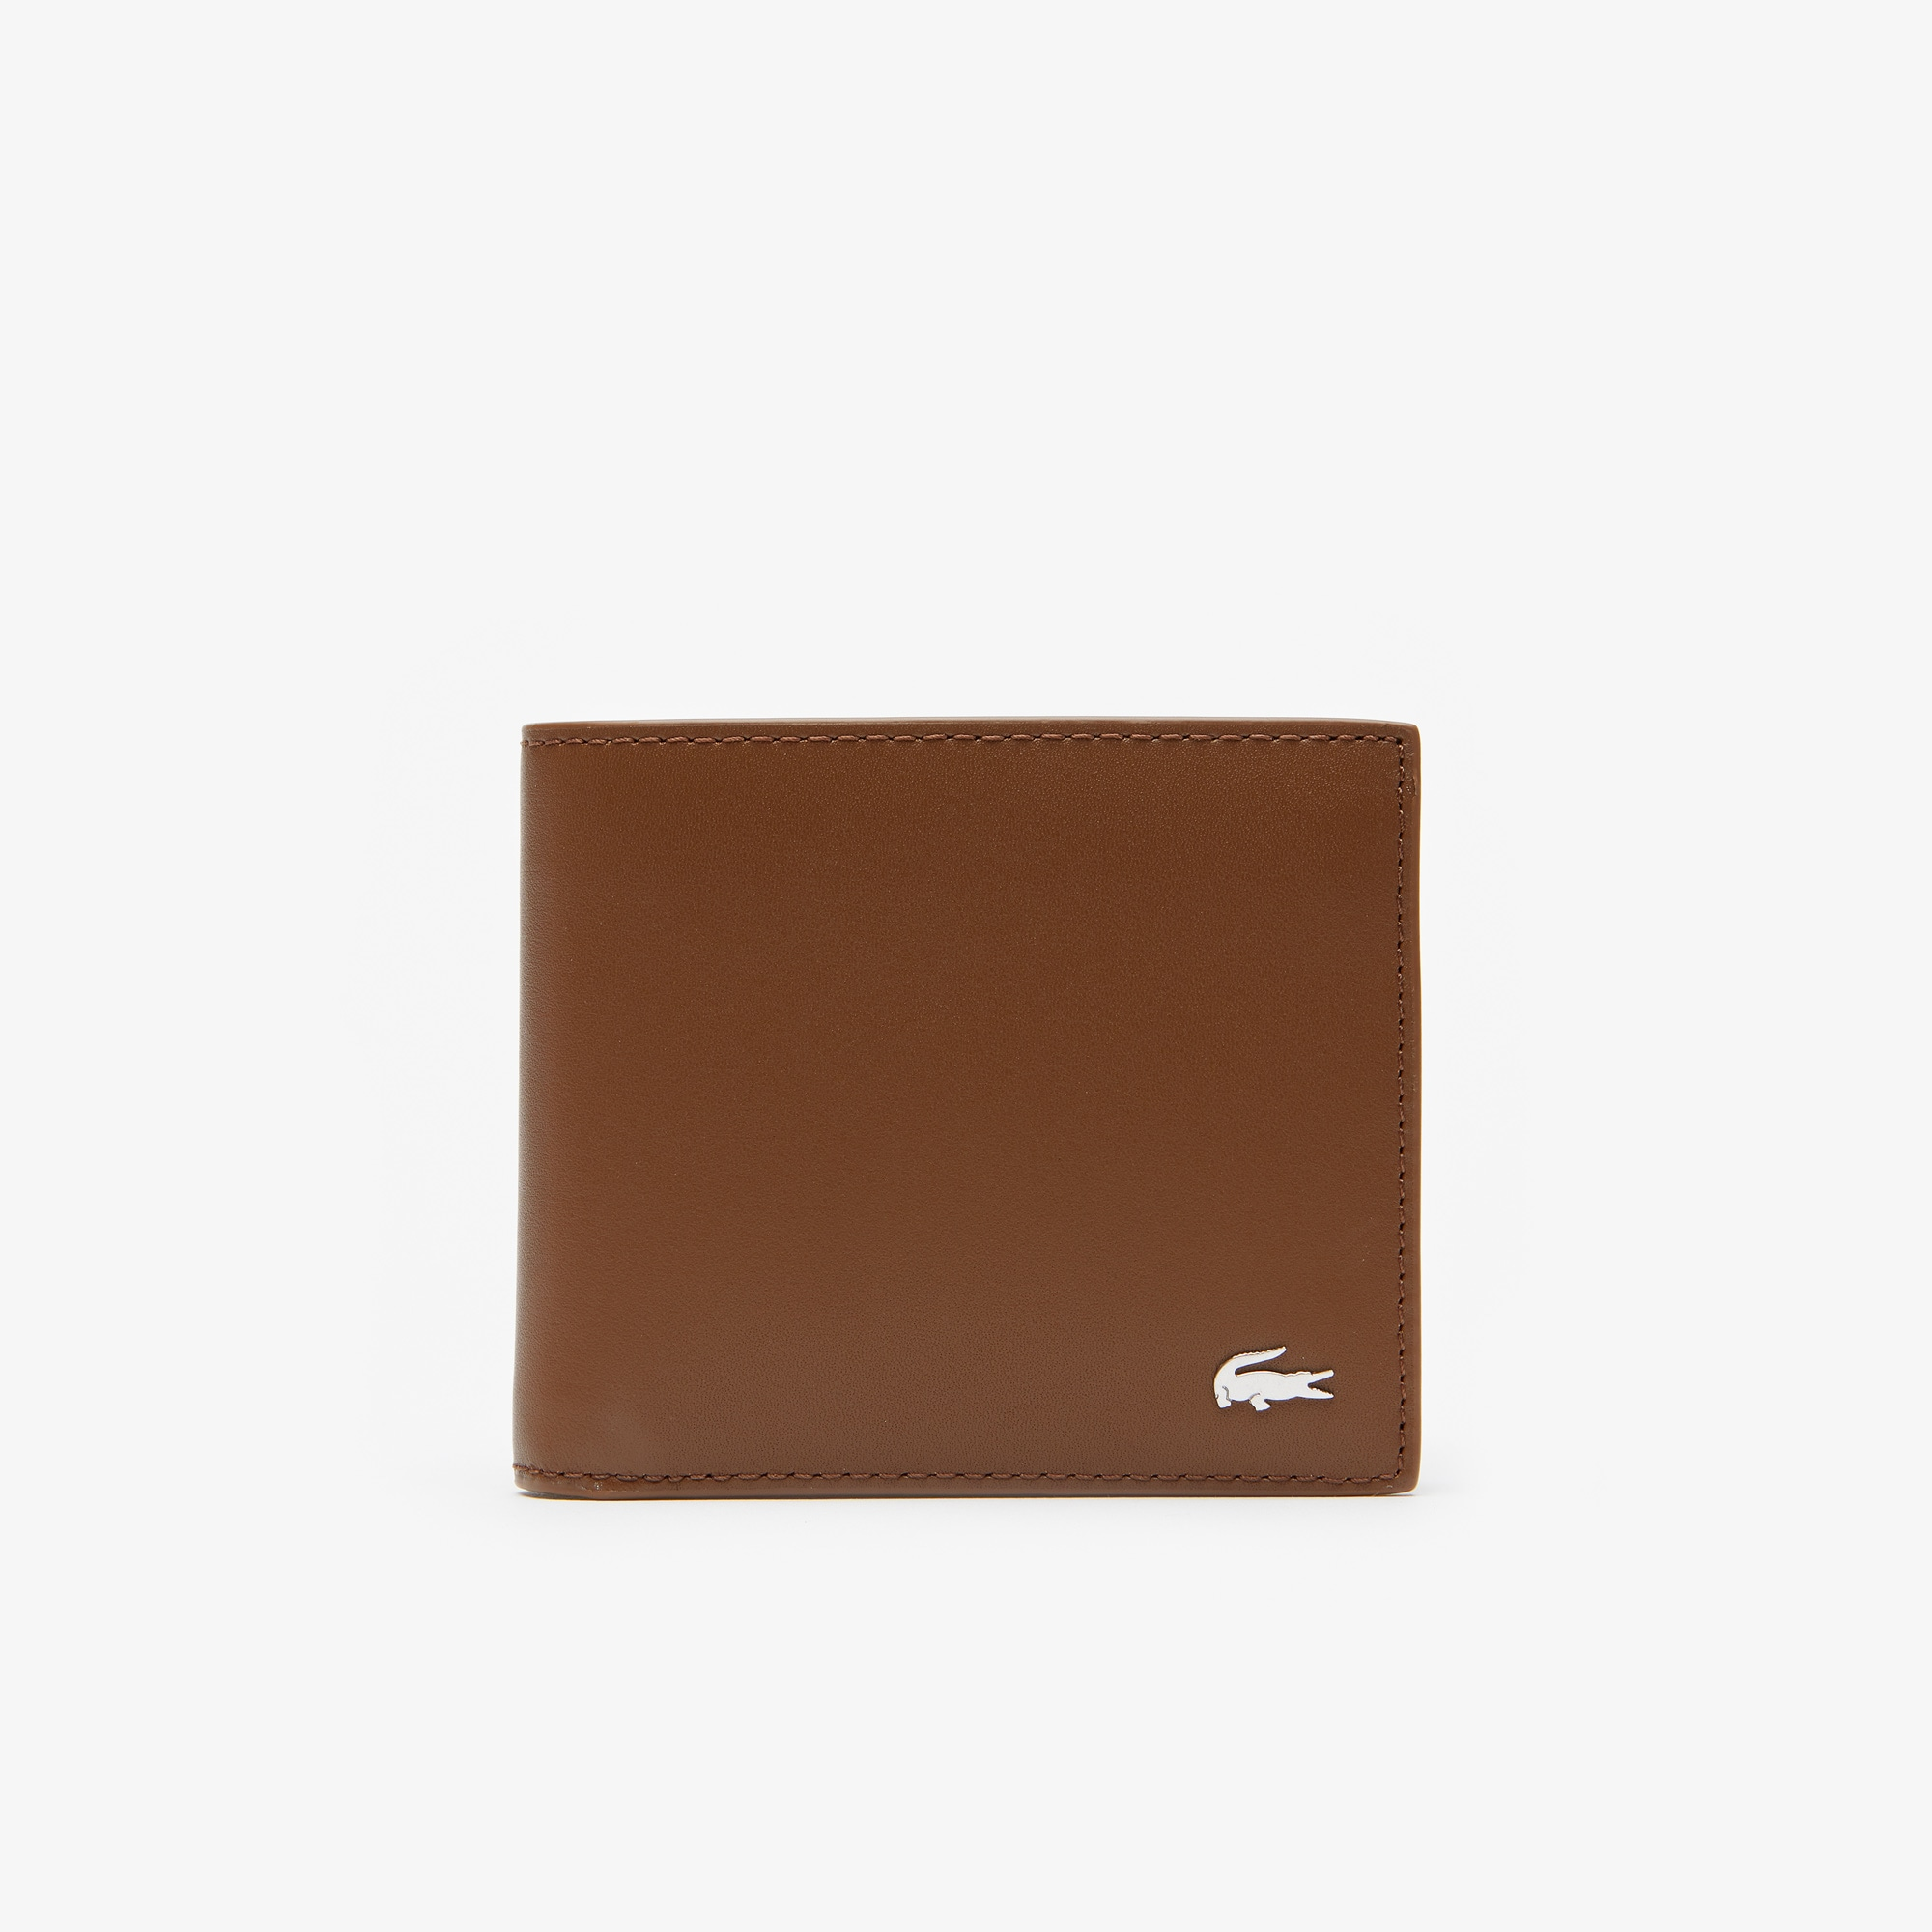 0928787426aa Small Leather Goods